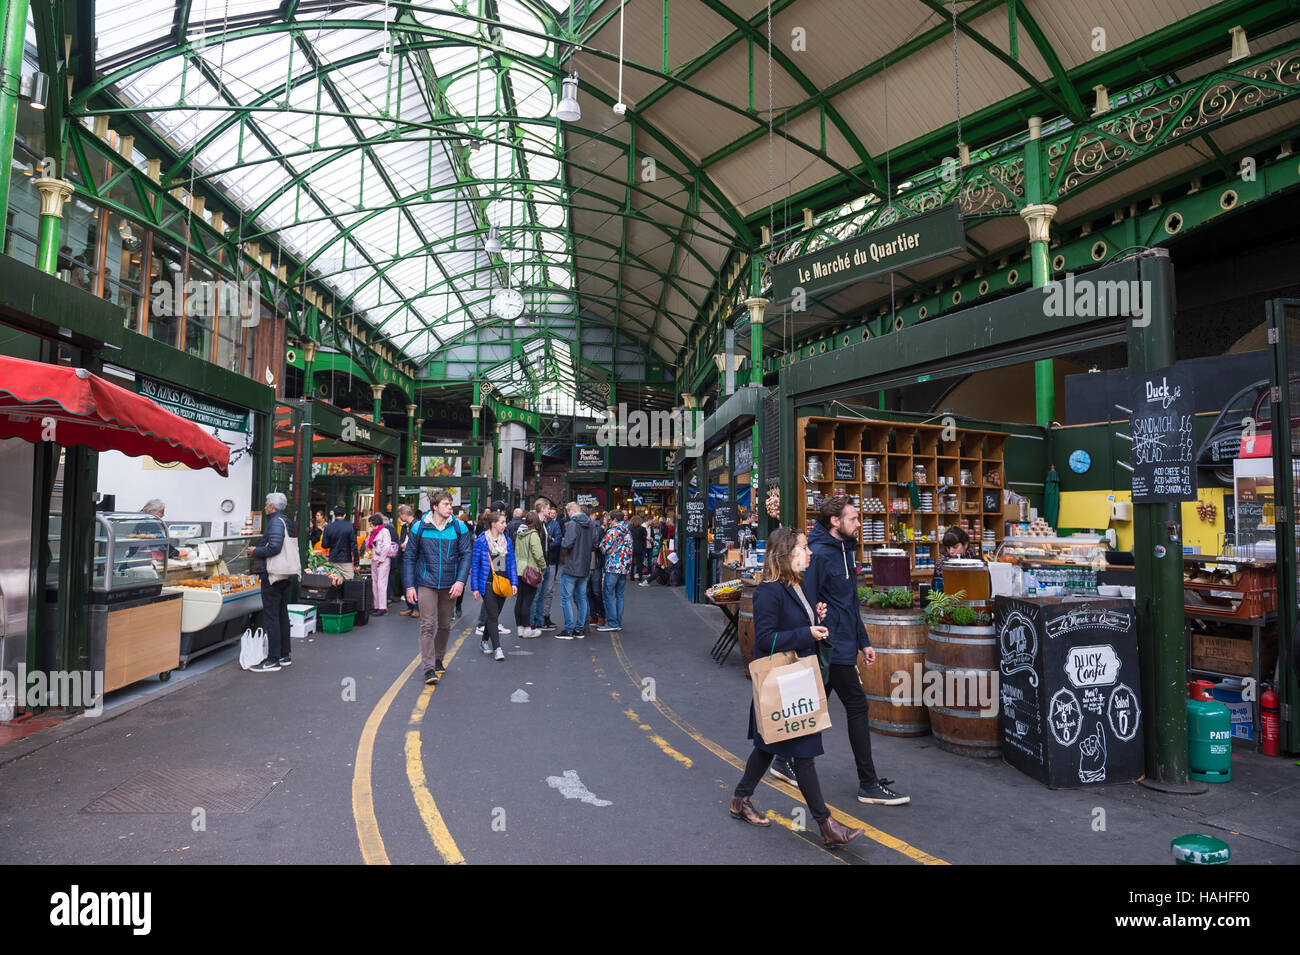 LONDON - OCTOBER 31, 2016: Visitors browse the specialty food stalls at Borough Market, one of the largest and oldest - Stock Image